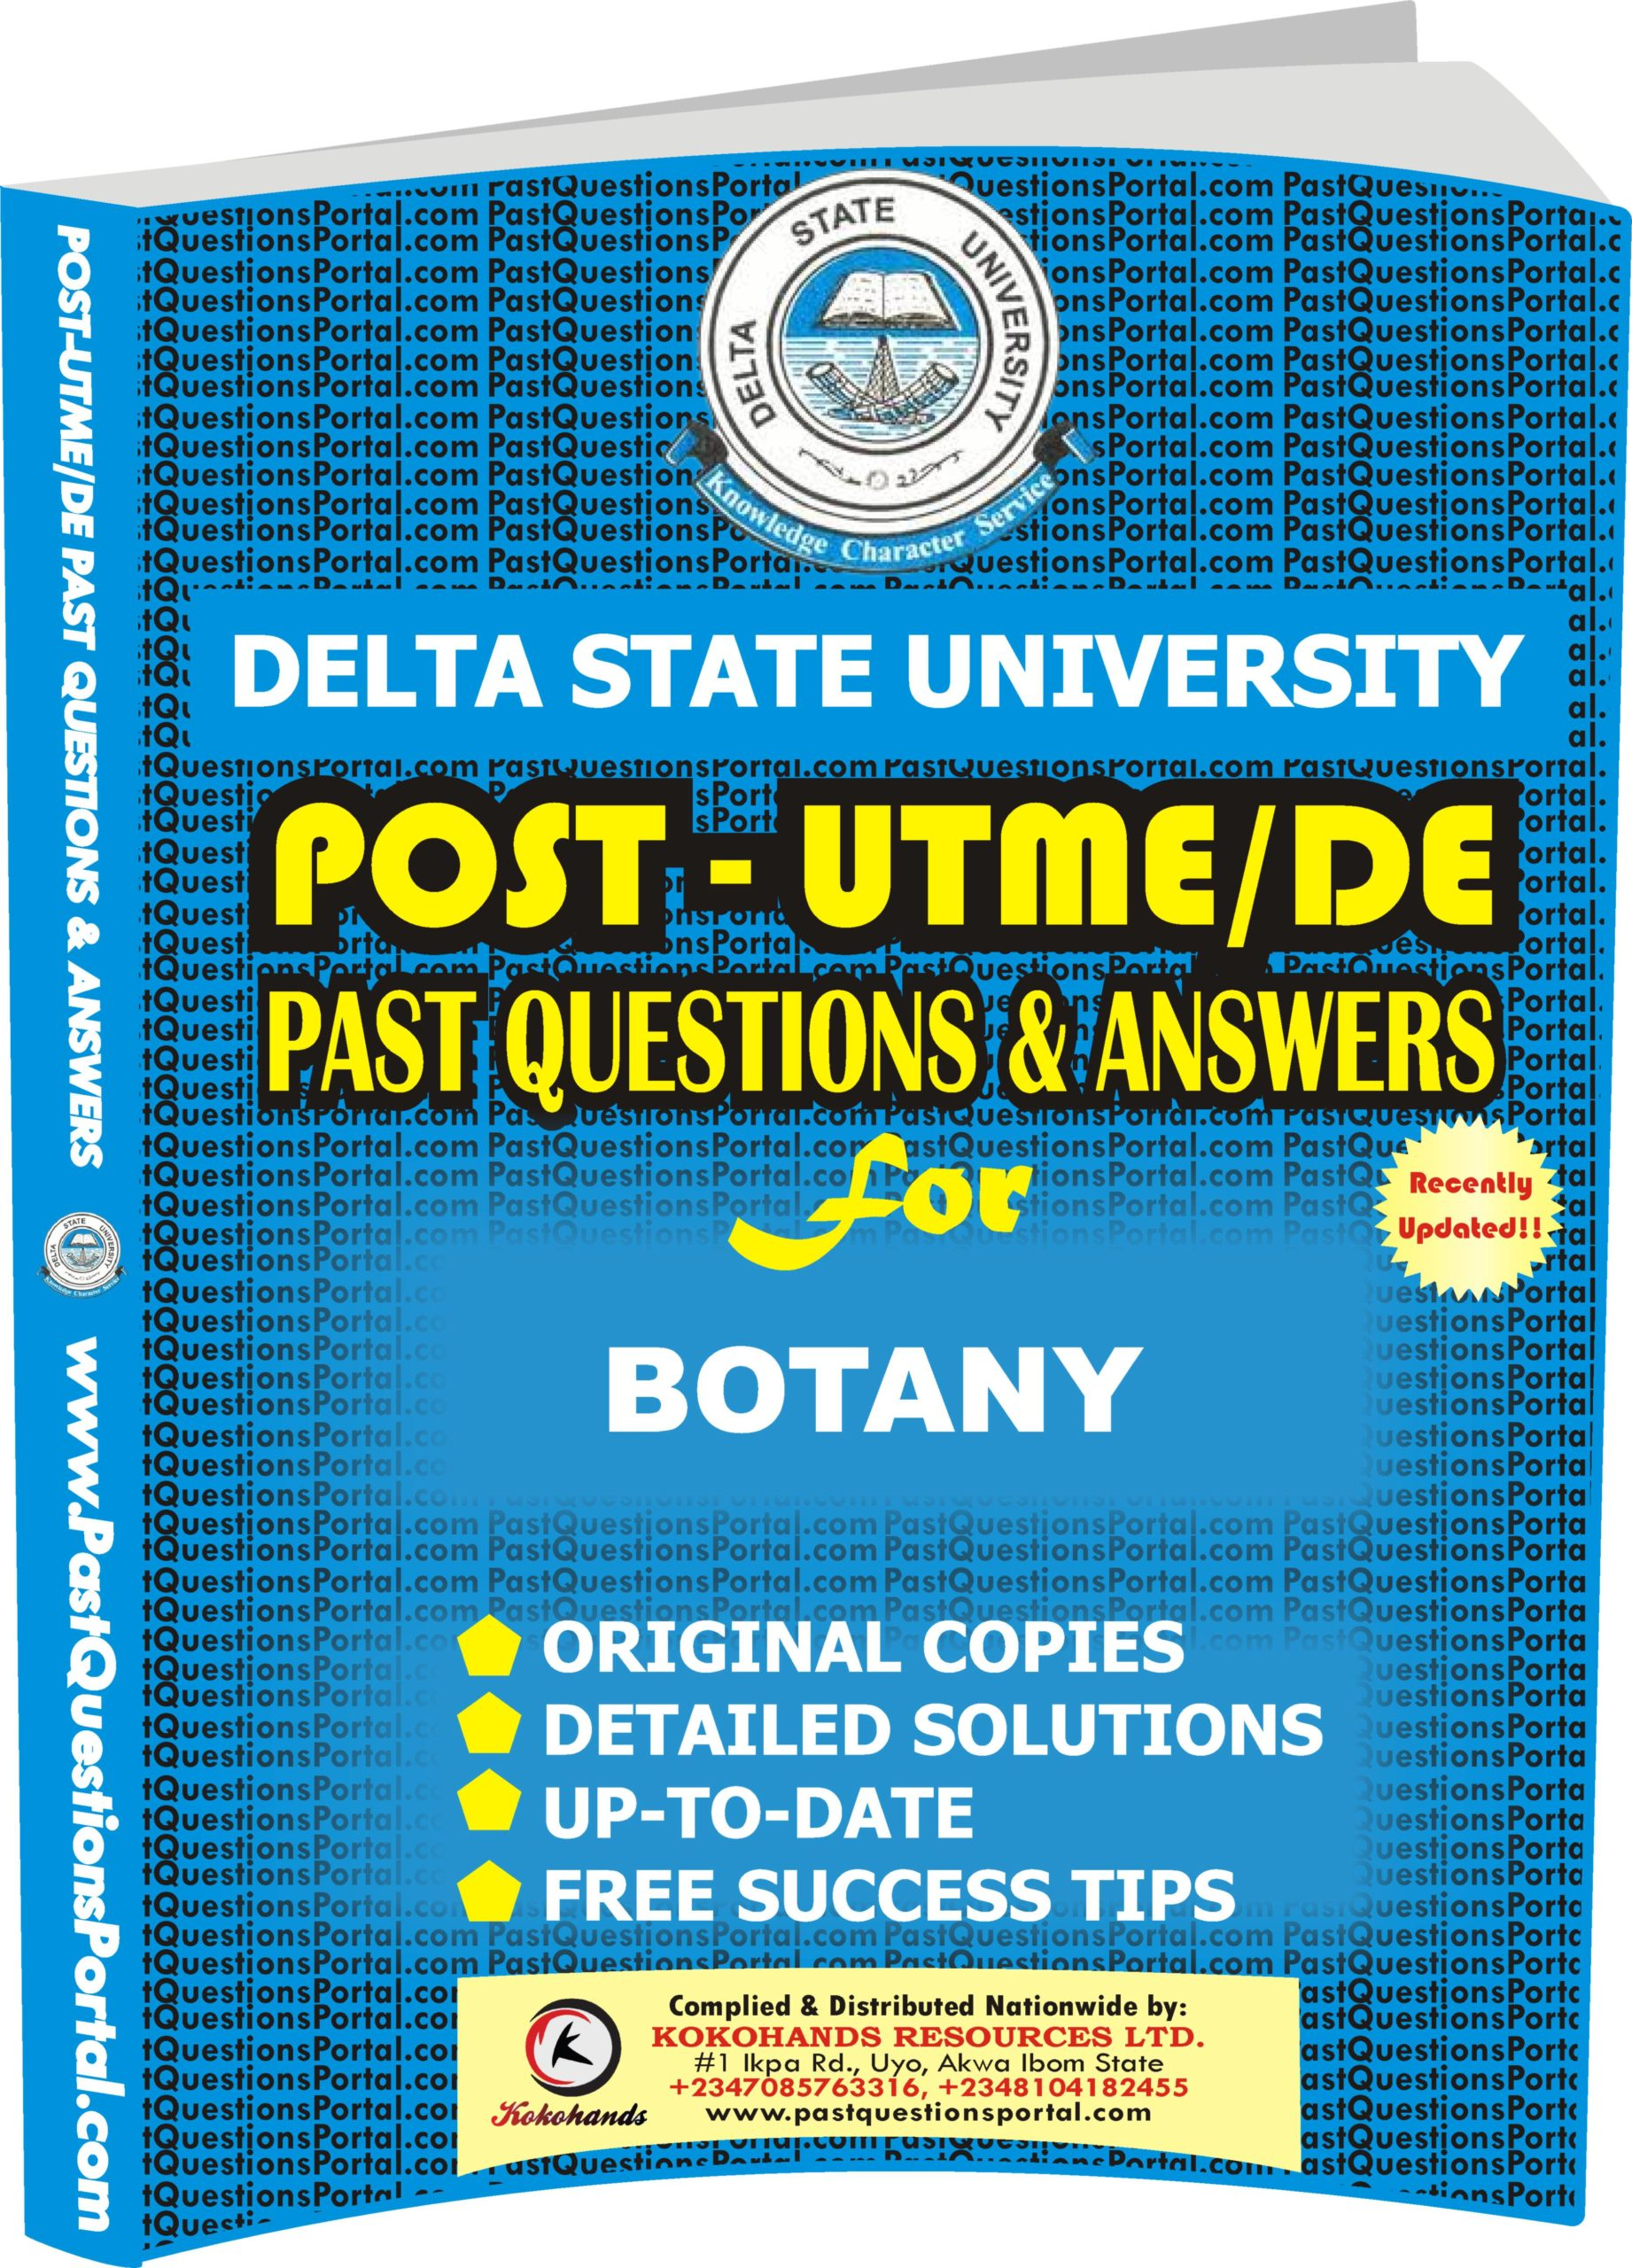 DELSU Post UTME Past Questions for BOTANY